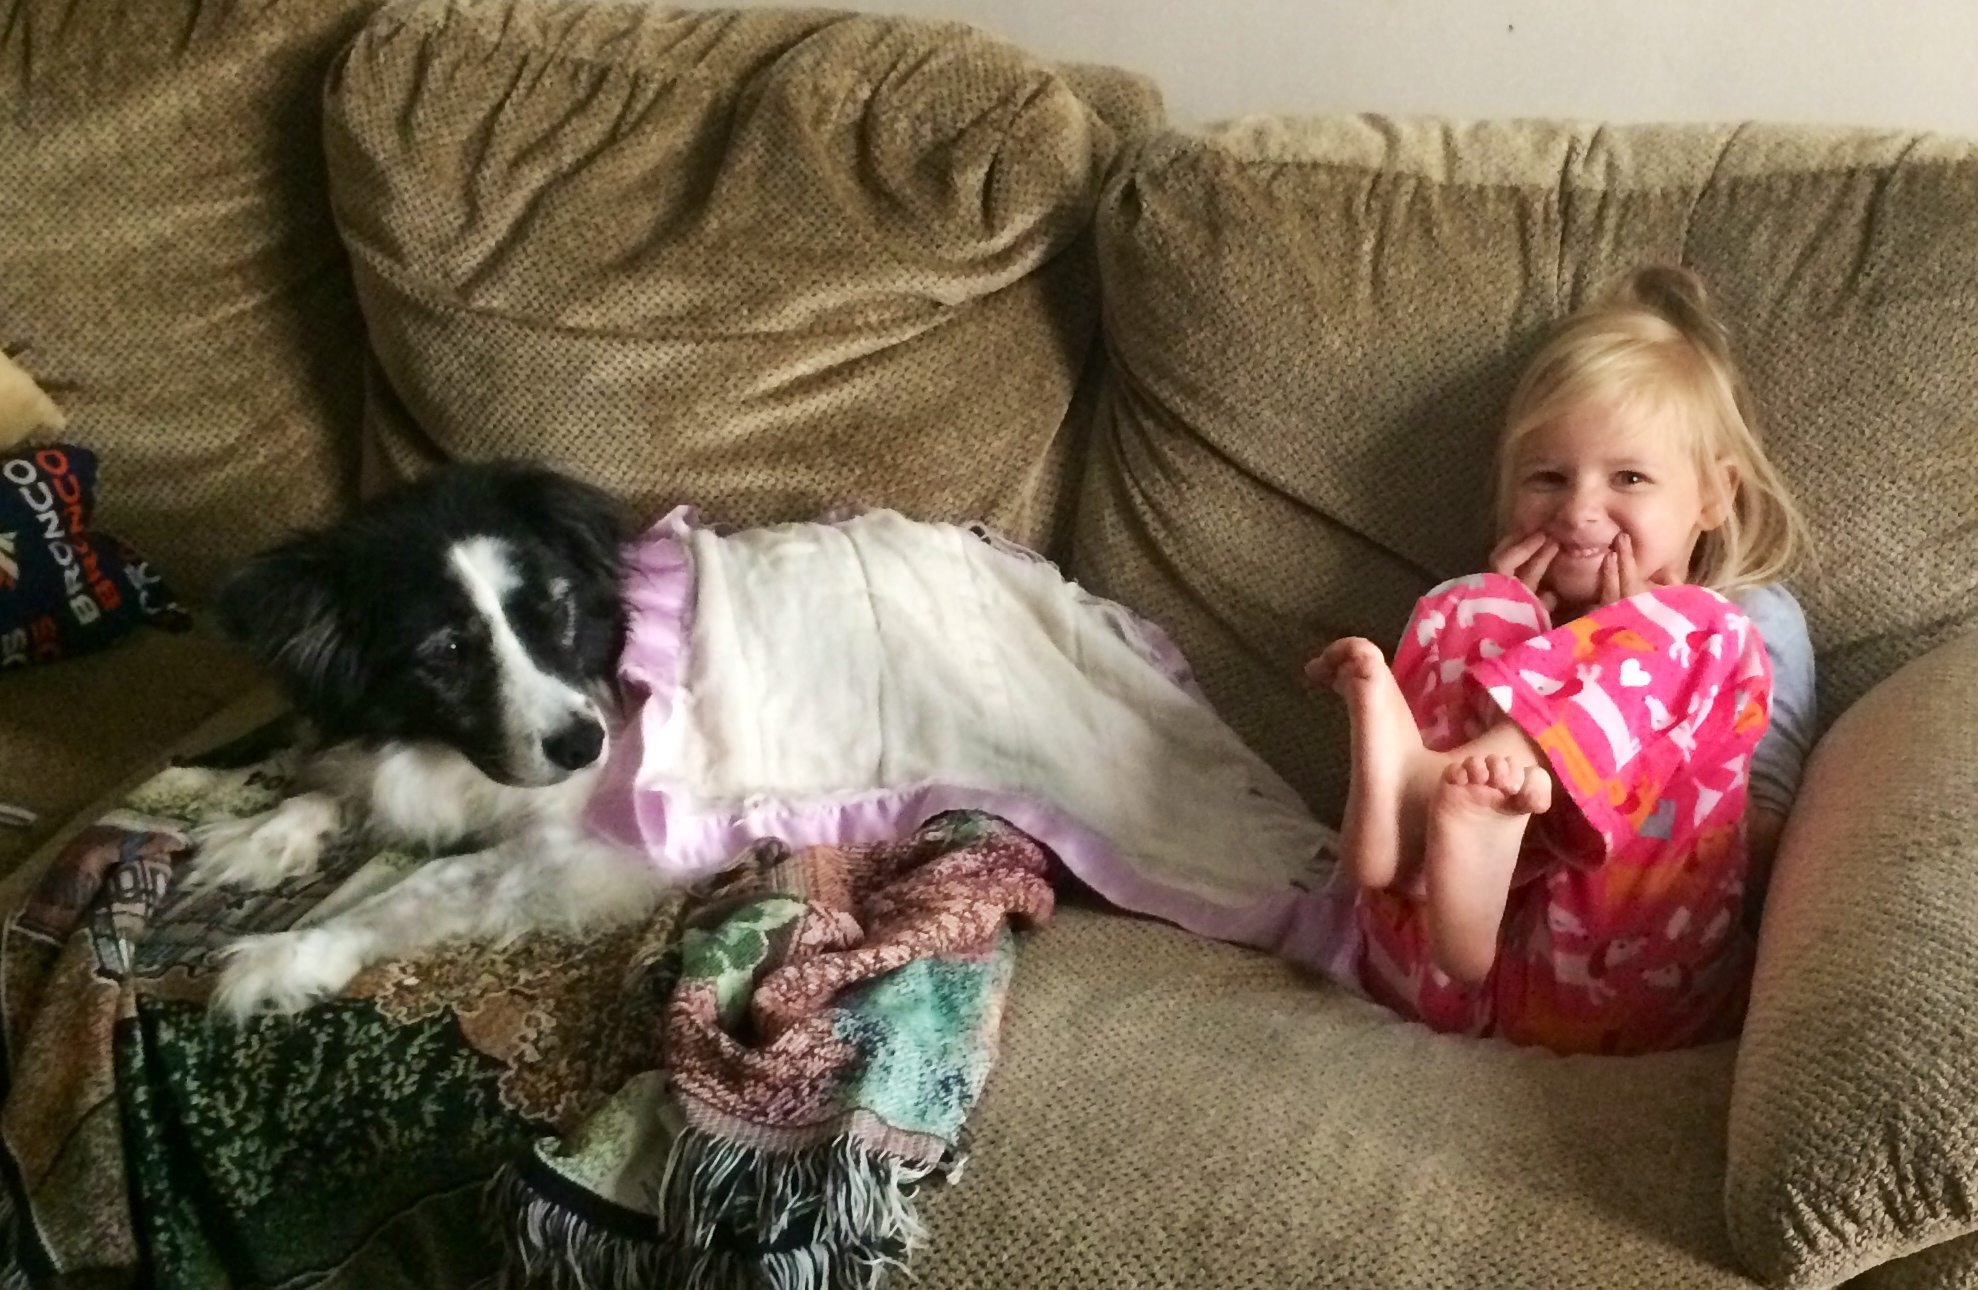 """Her last morning. Child 2.0 laid her own beloved blanket upon Sydney, to """"help her feel better."""""""